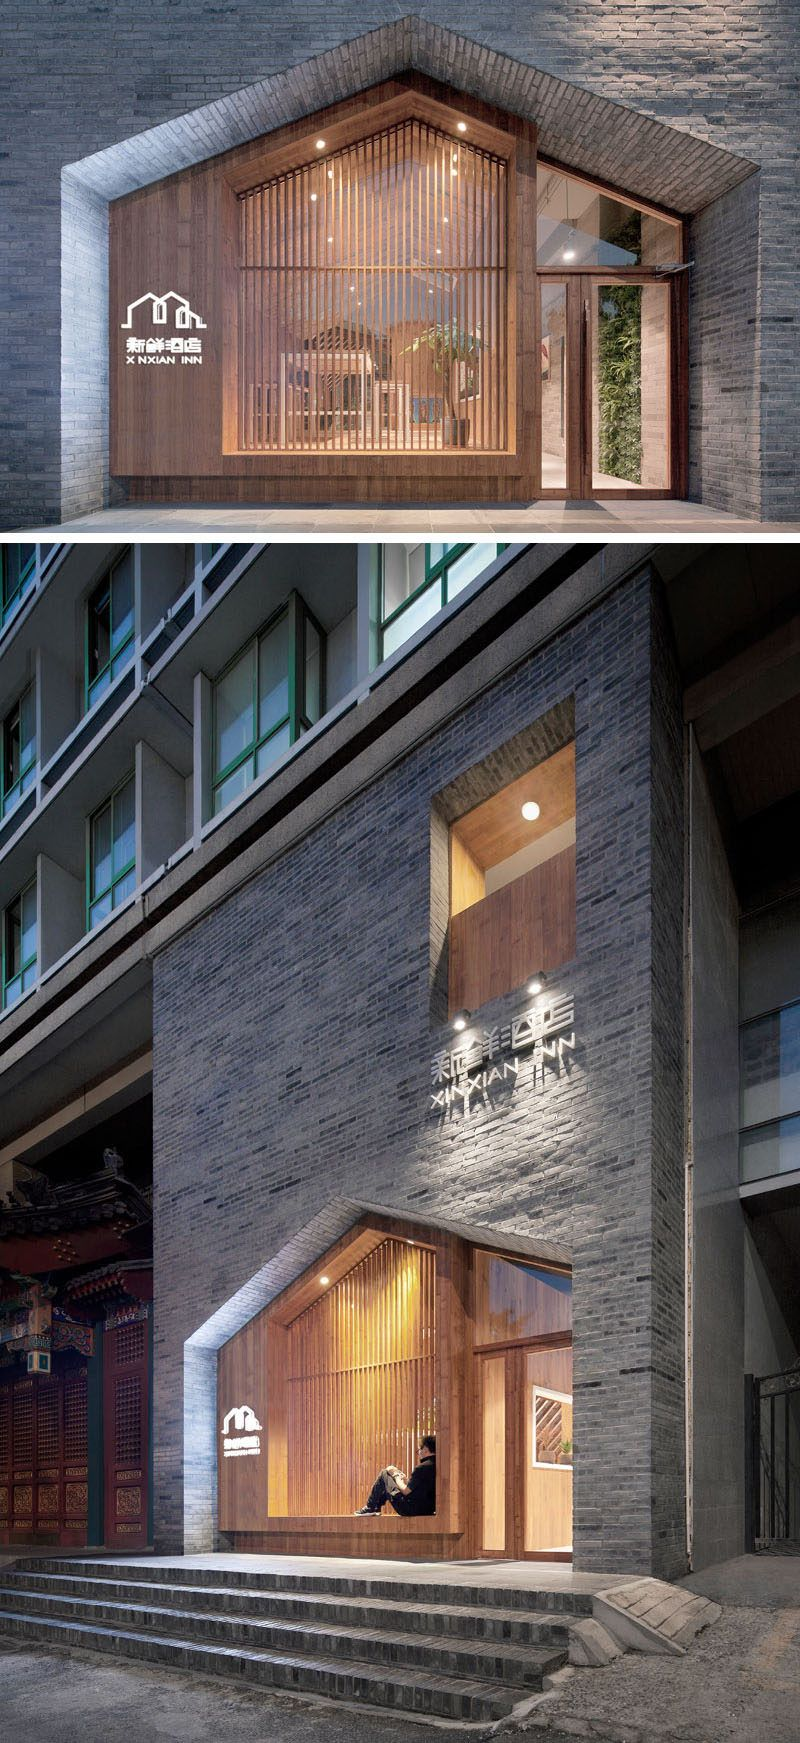 Facade House Small Modern Home Cool House Designs: Gray Bricks And Wood, Work Together To Create A Contemporary Facade For This Small Hotel In